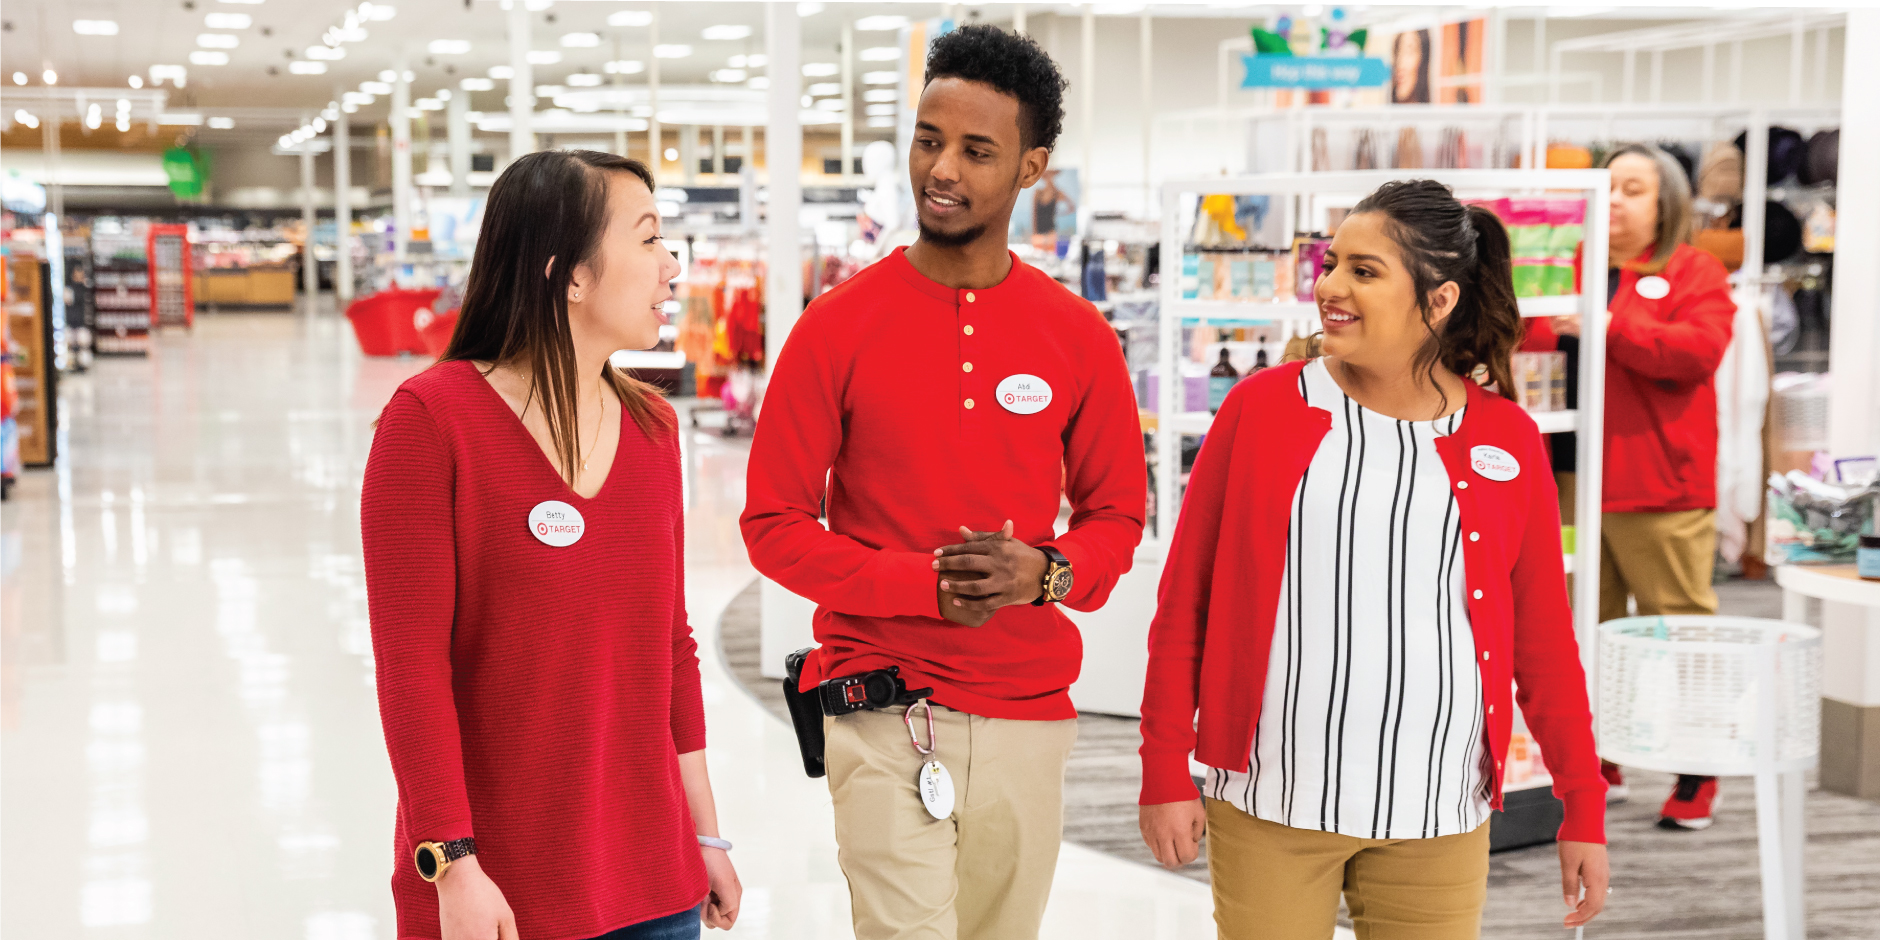 Three team members wearing red shirts talking as they walk a Target aisle